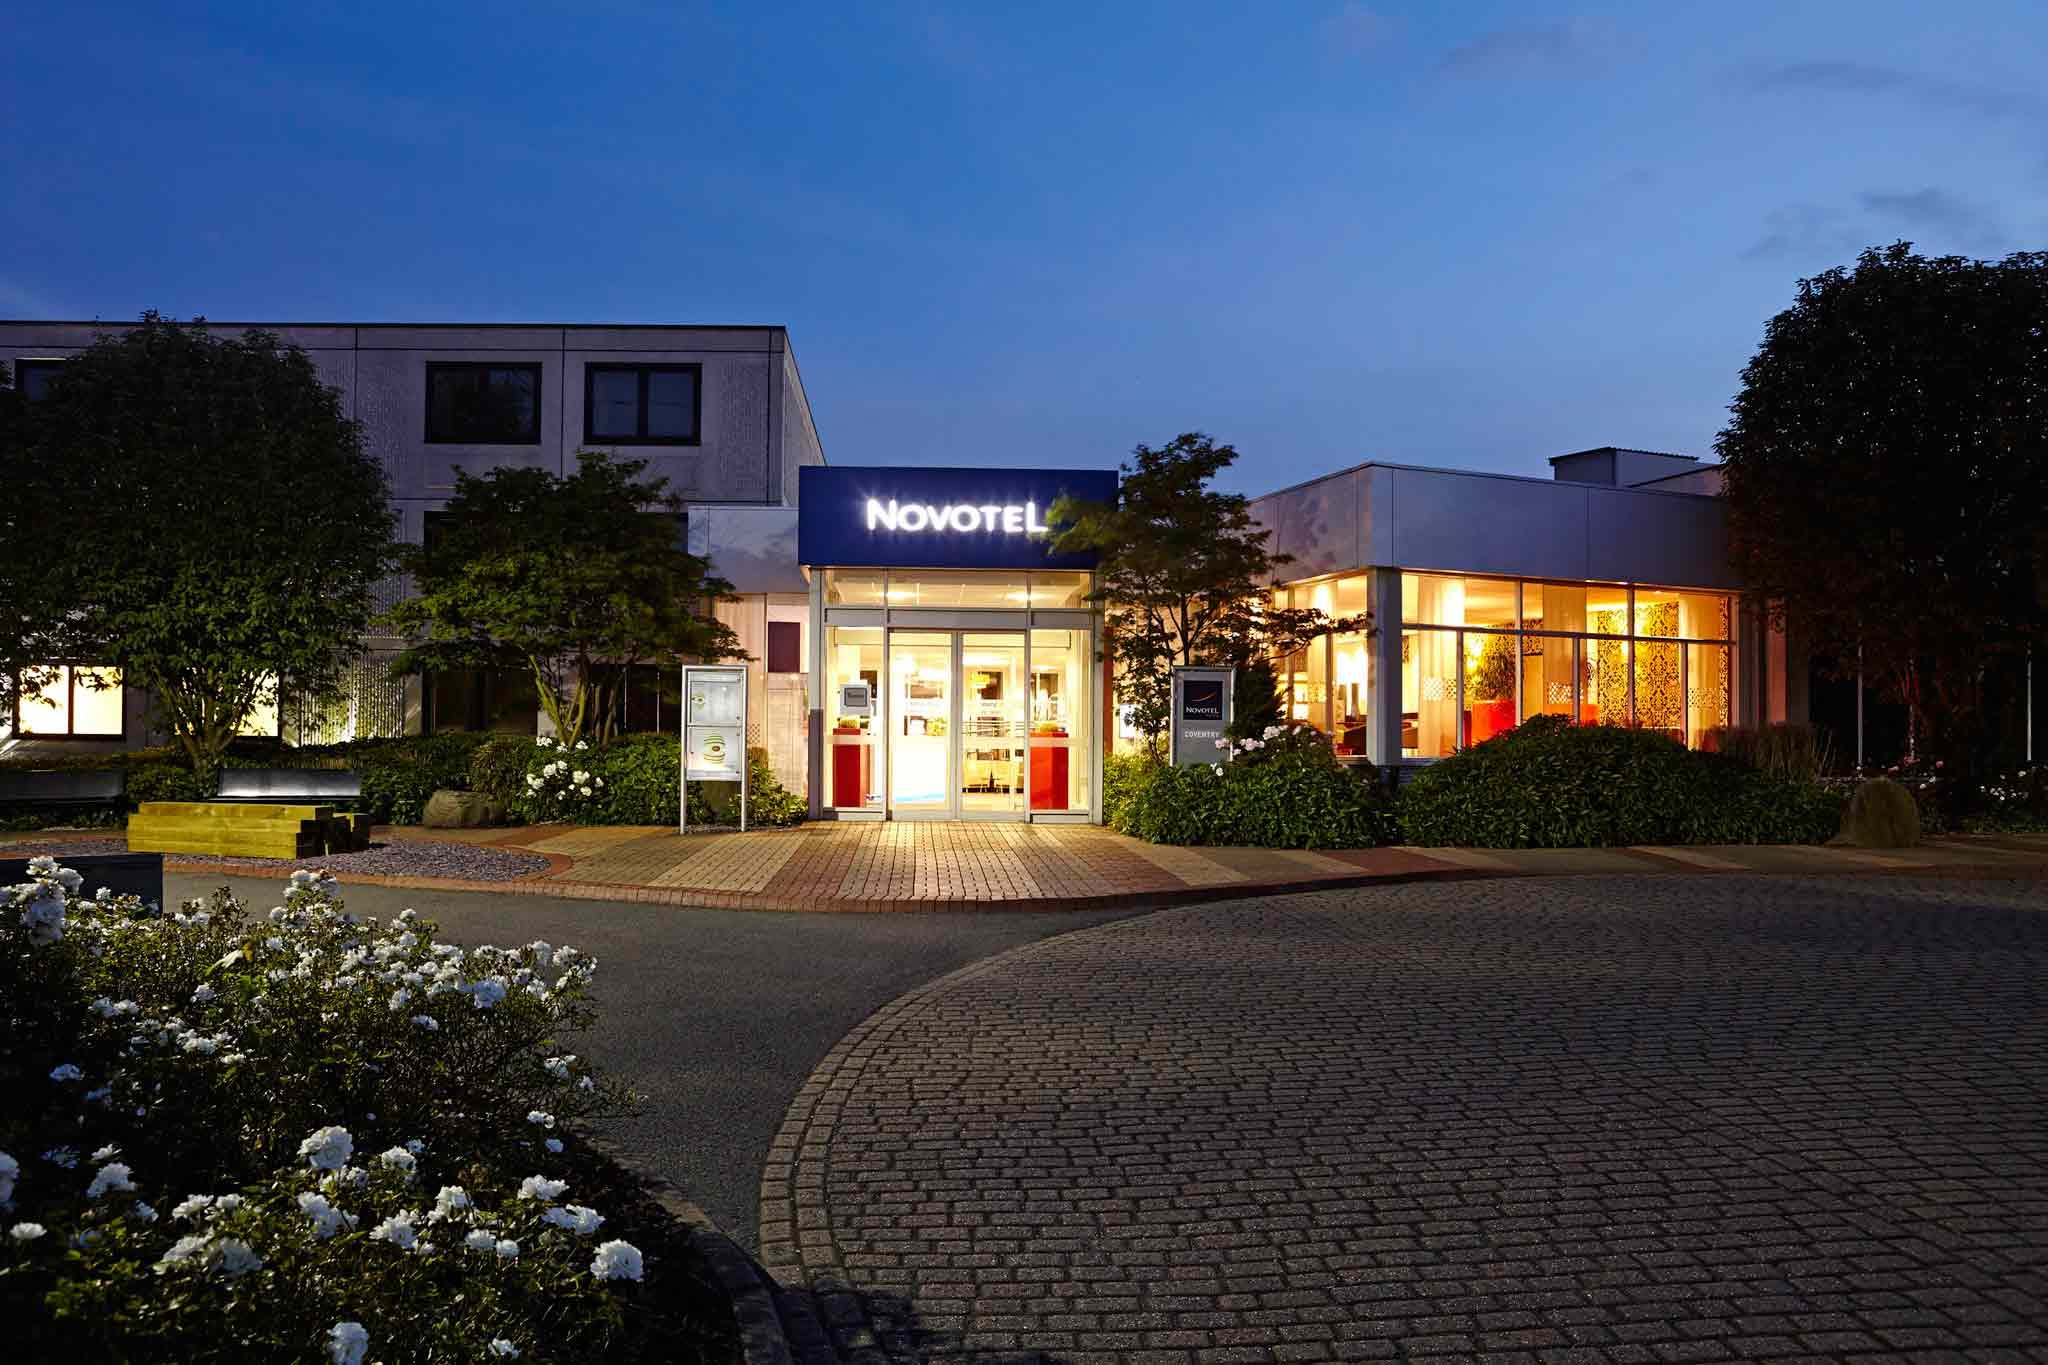 Picture of Novotel Coventry M6 J3